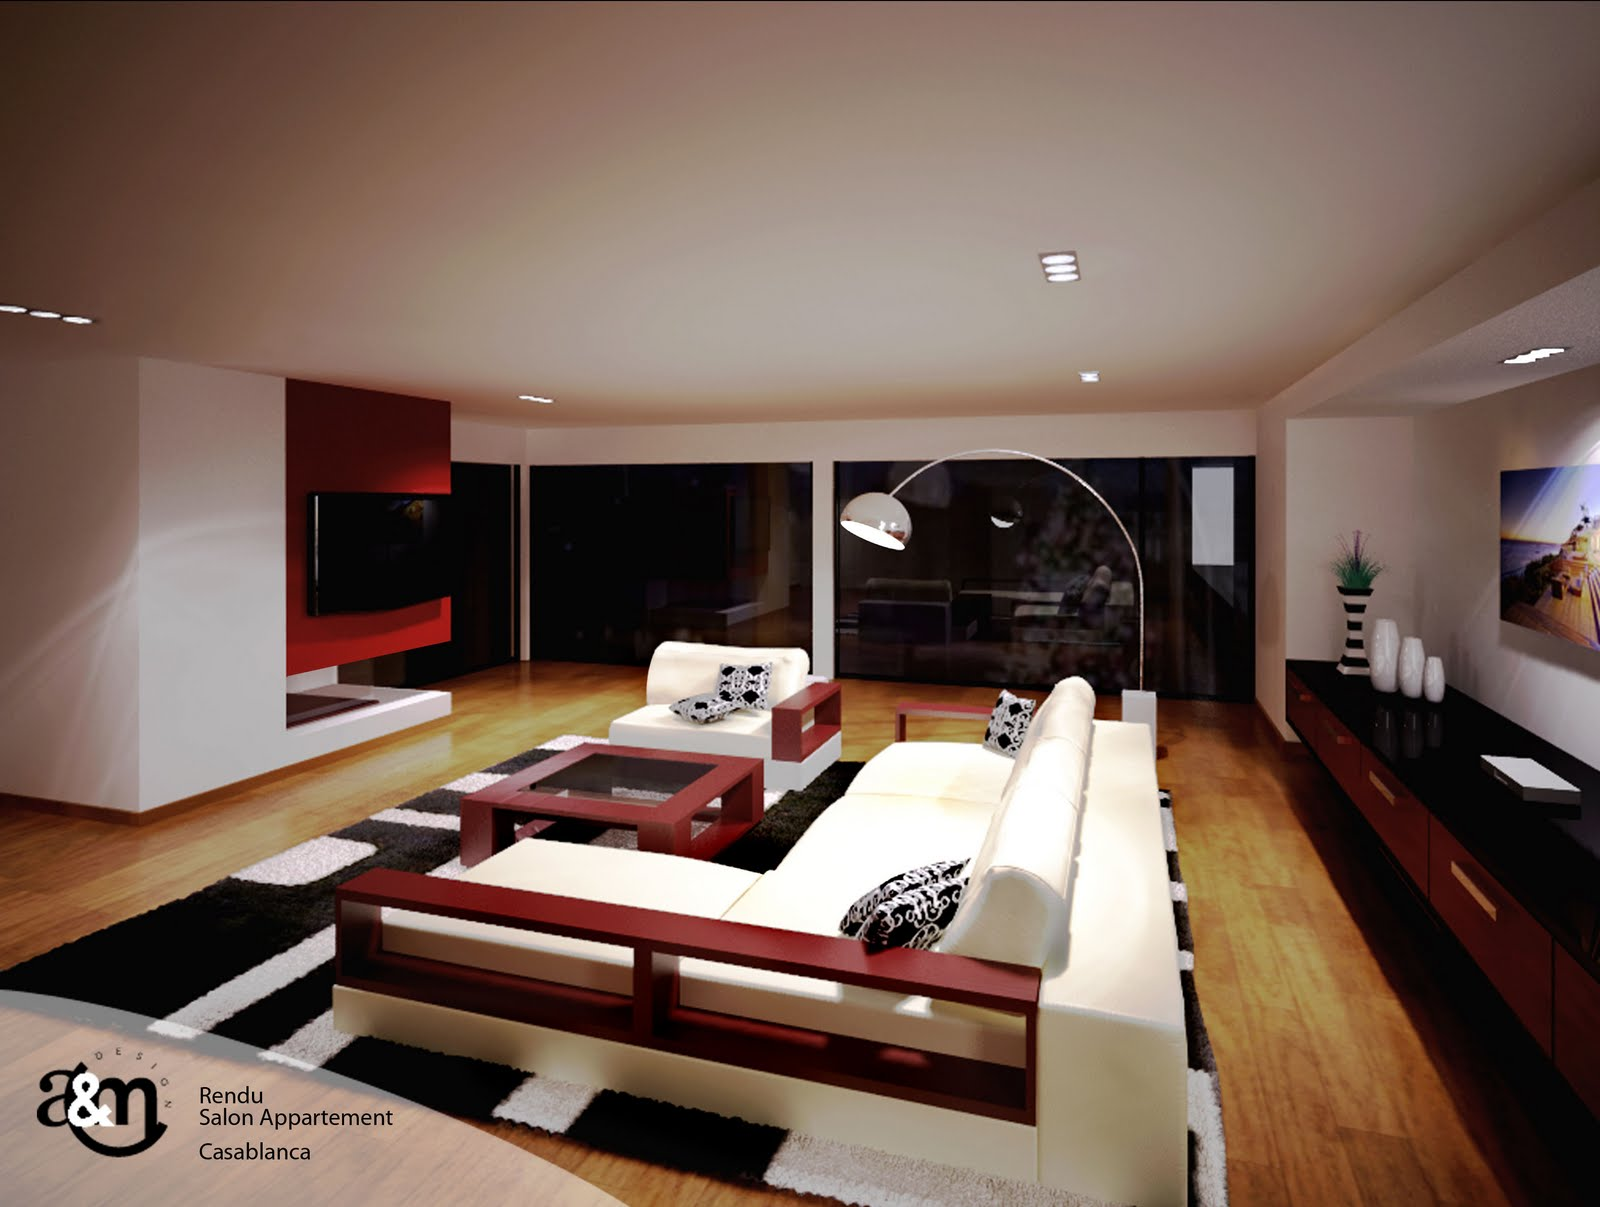 A m design architecture d 39 interieur design agencement for Design d interieur